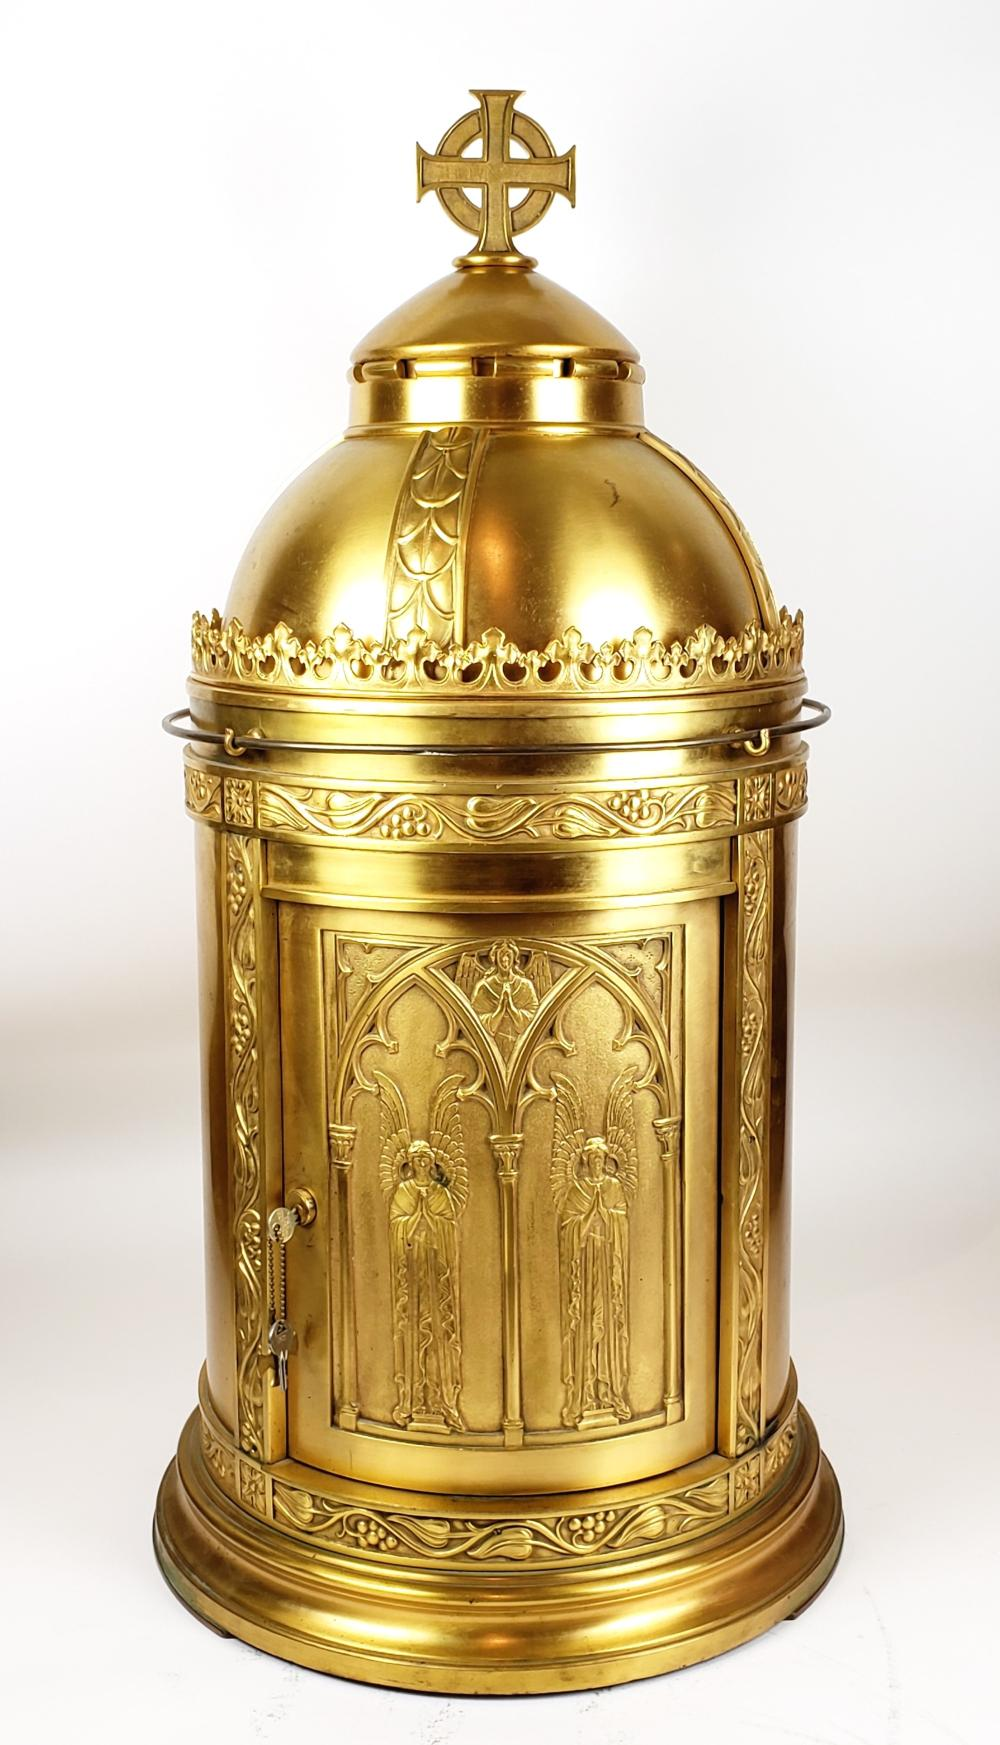 Monumental Late 19th C. Gilt Bronze Cathedral Temple Form Vessel